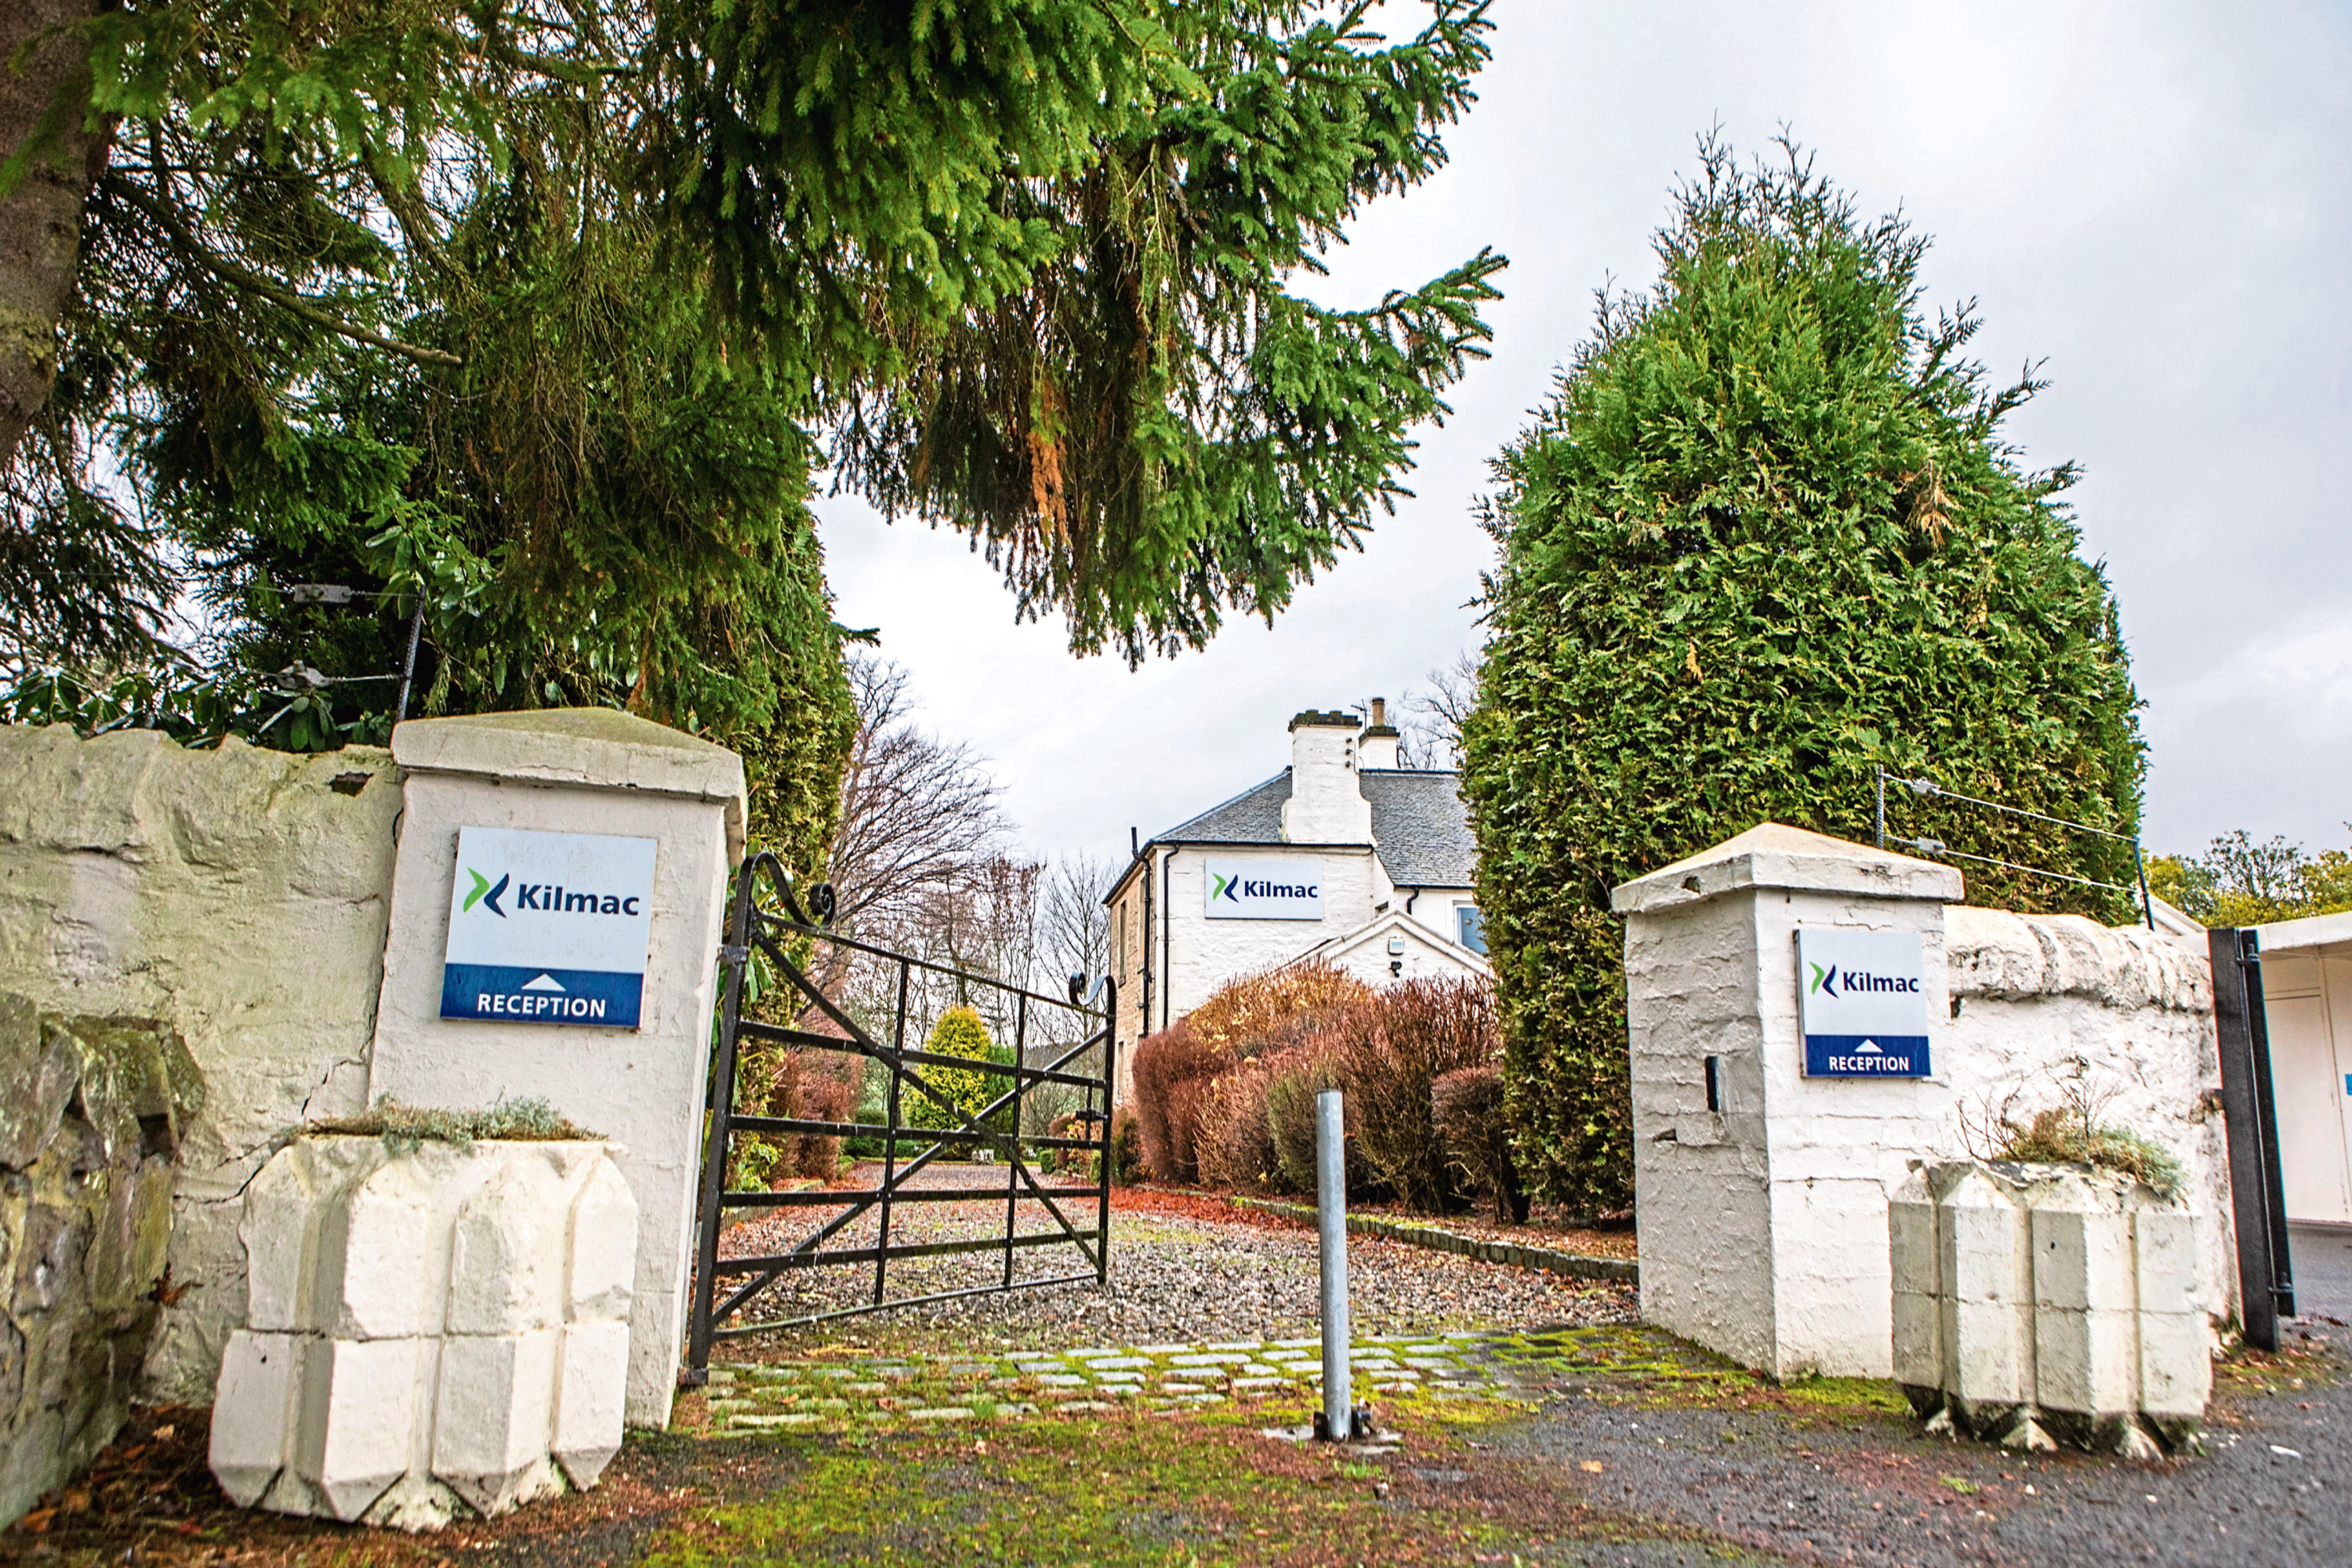 Kilmac Construction staff have been warned of possible job losses.